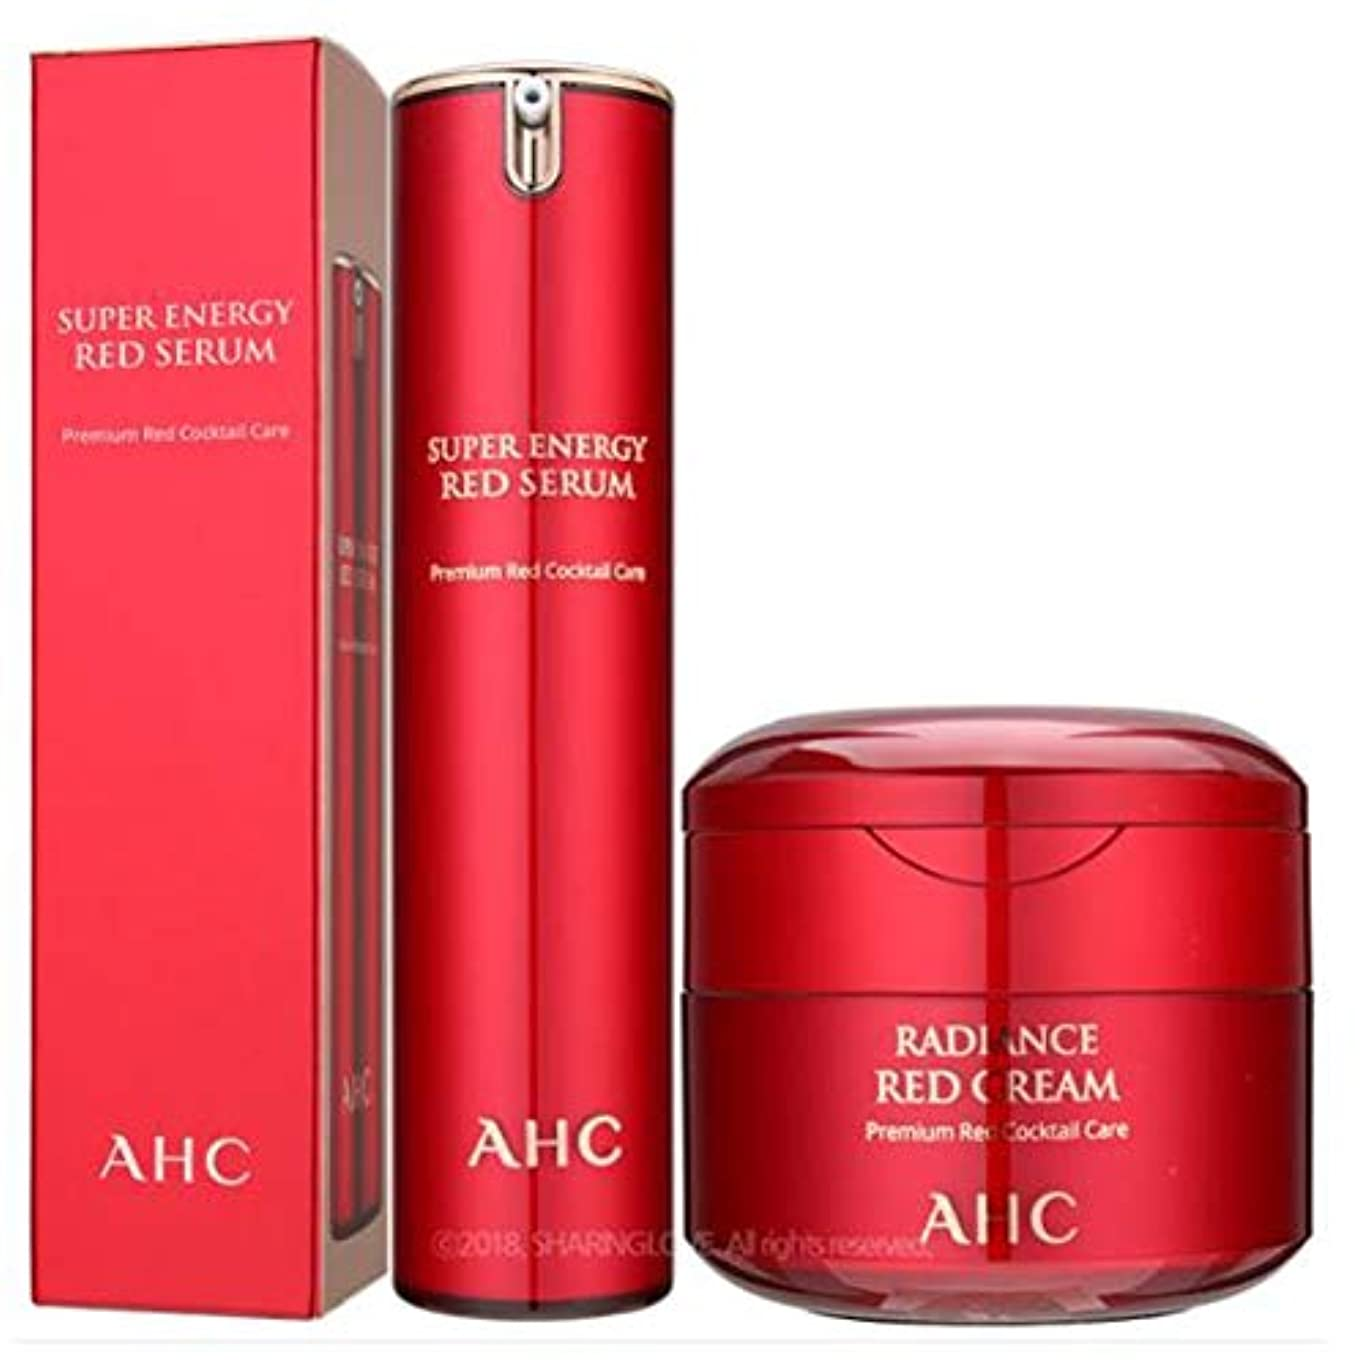 内なる伝導率土器AHC Season2 Super Energy Red Serum 50ml&AHC Season2 Super Energy Red Cream 50ml [parallel import goods]